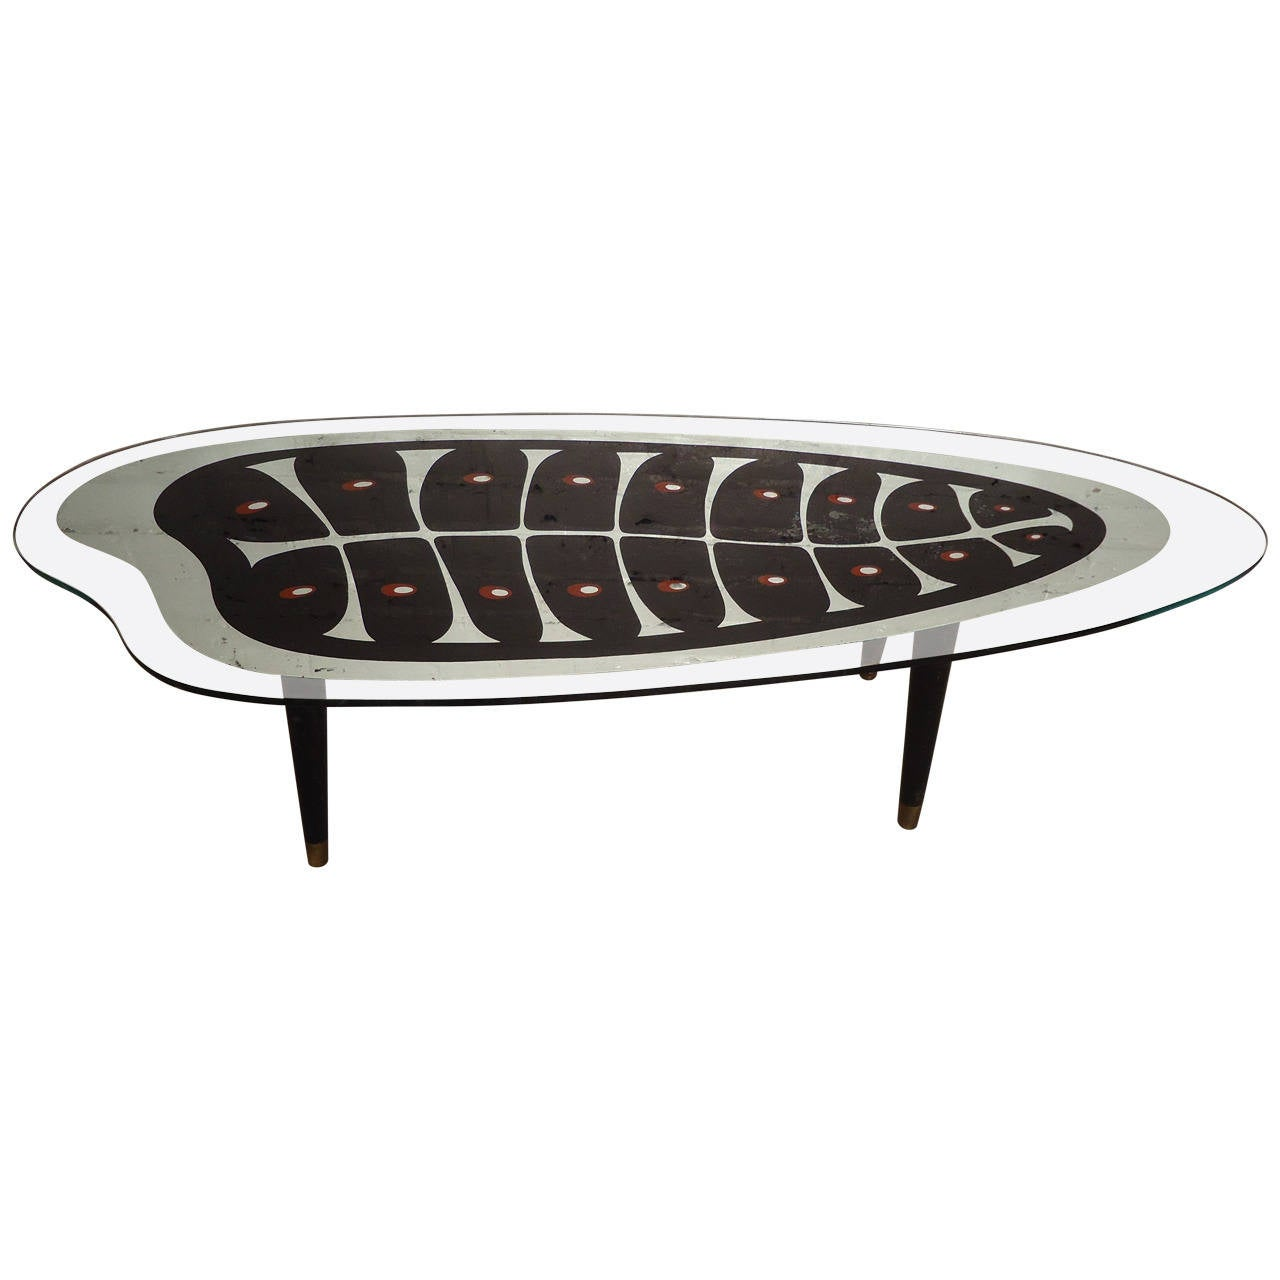 Rare Midcentury Mirrored Coffee Table With Painted Design For Sale At 1stdibs